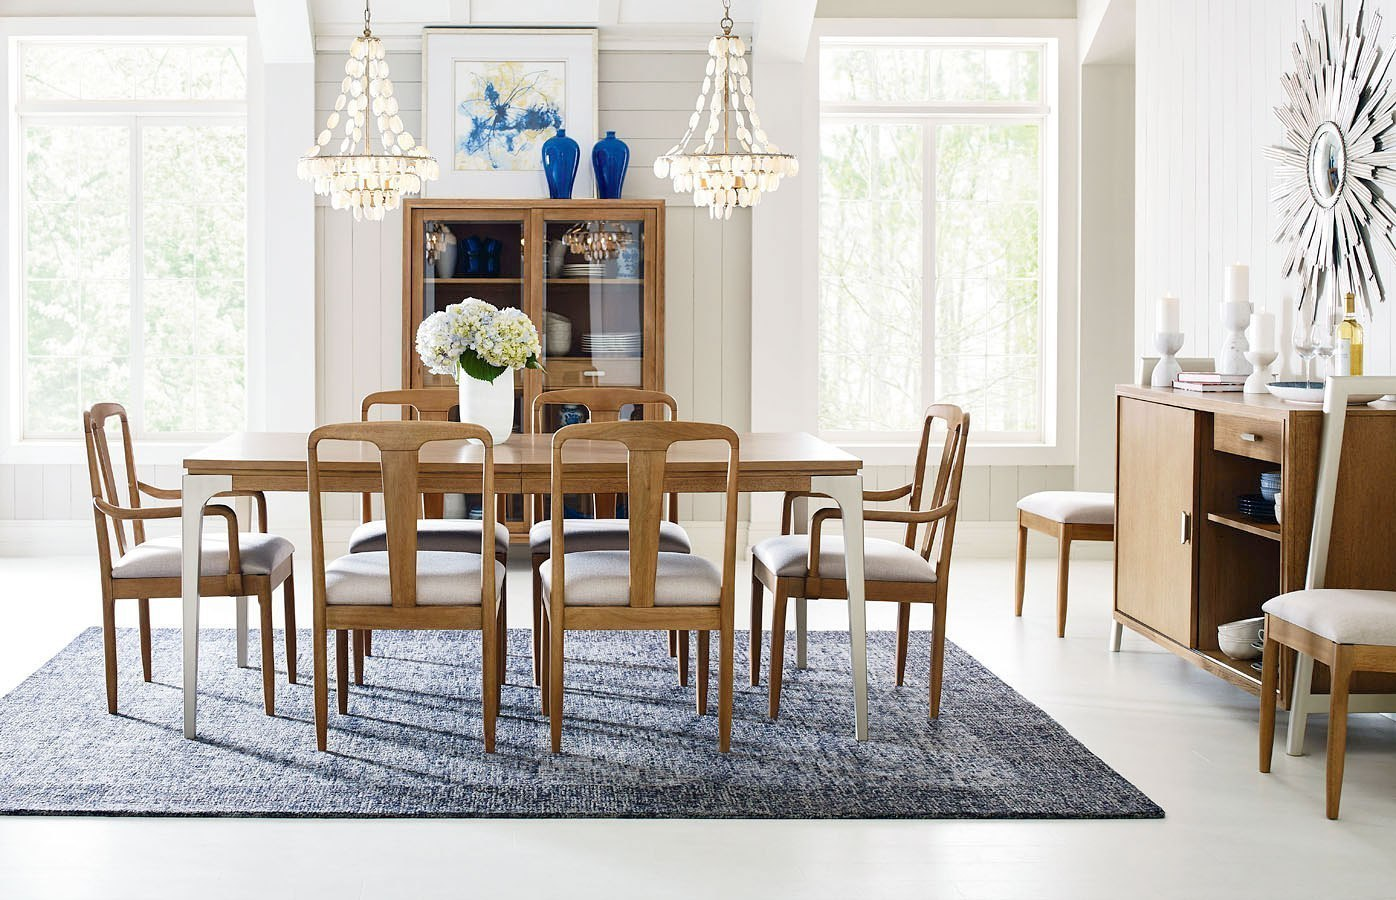 Hygge Leg Dining Room Set w/ Splat Back Chairs by Rachael ...